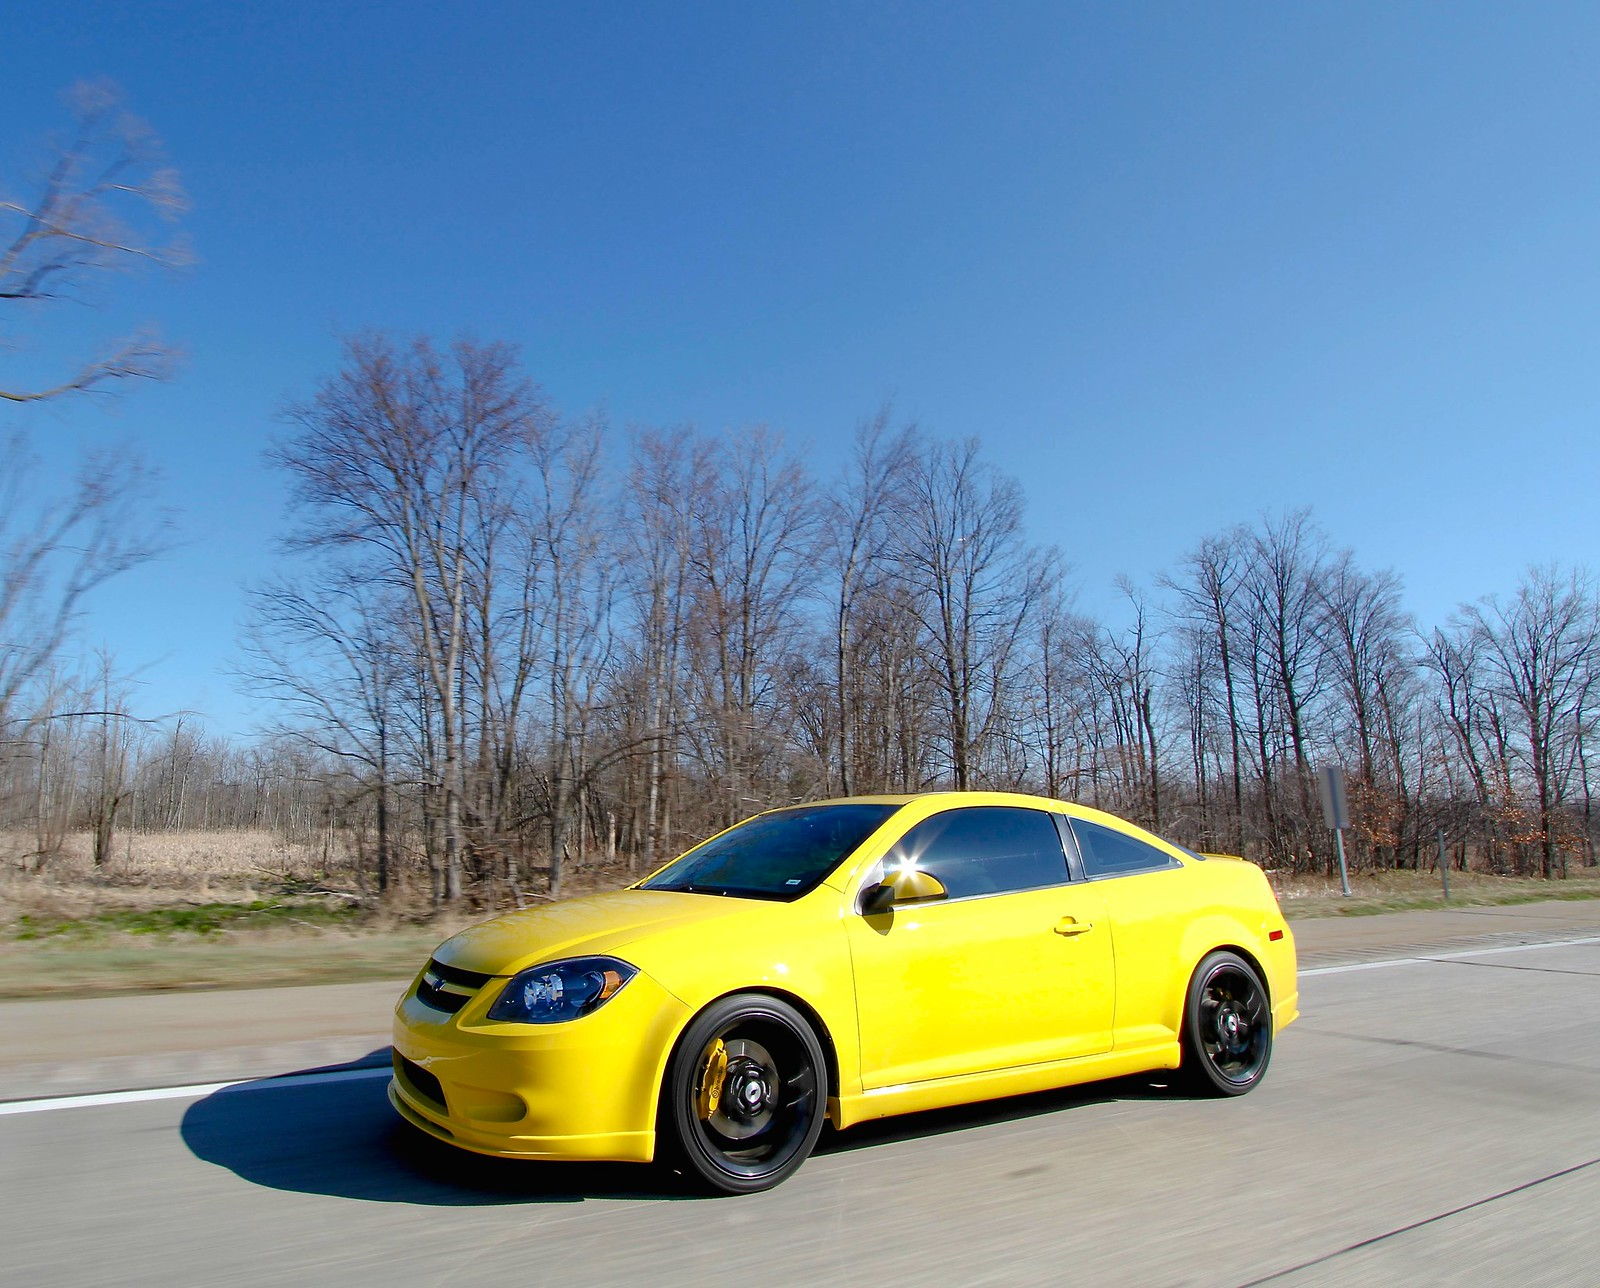 For Sale 2009 Cobalt Ss Turbo In Rally Yellow Cobalt Ss